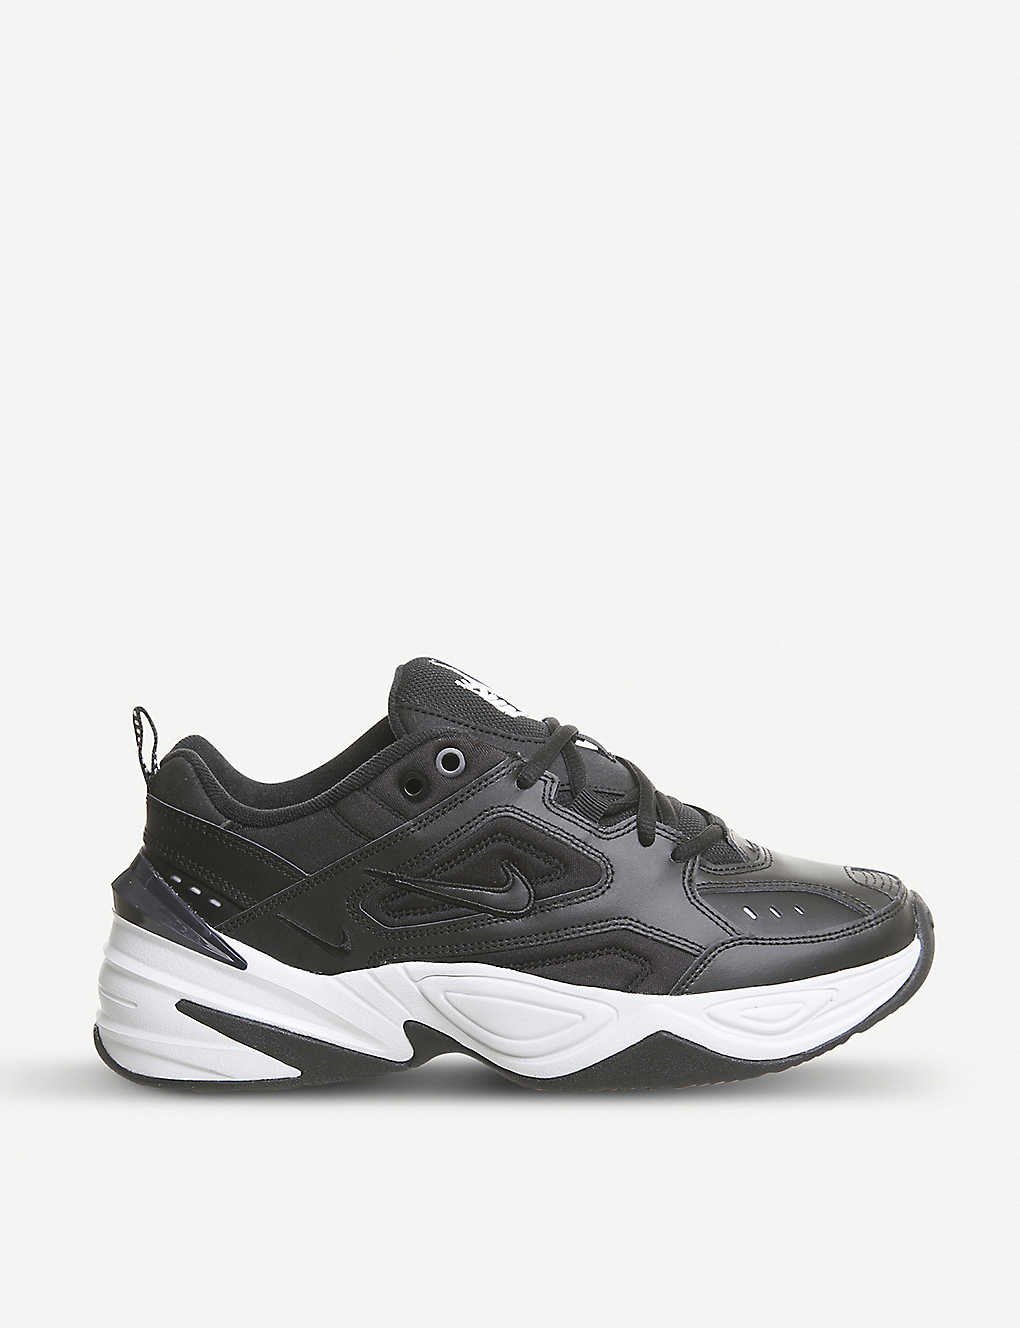 promo code 51c69 9ac27 ... M2K Tekno leather trainers zoom ...